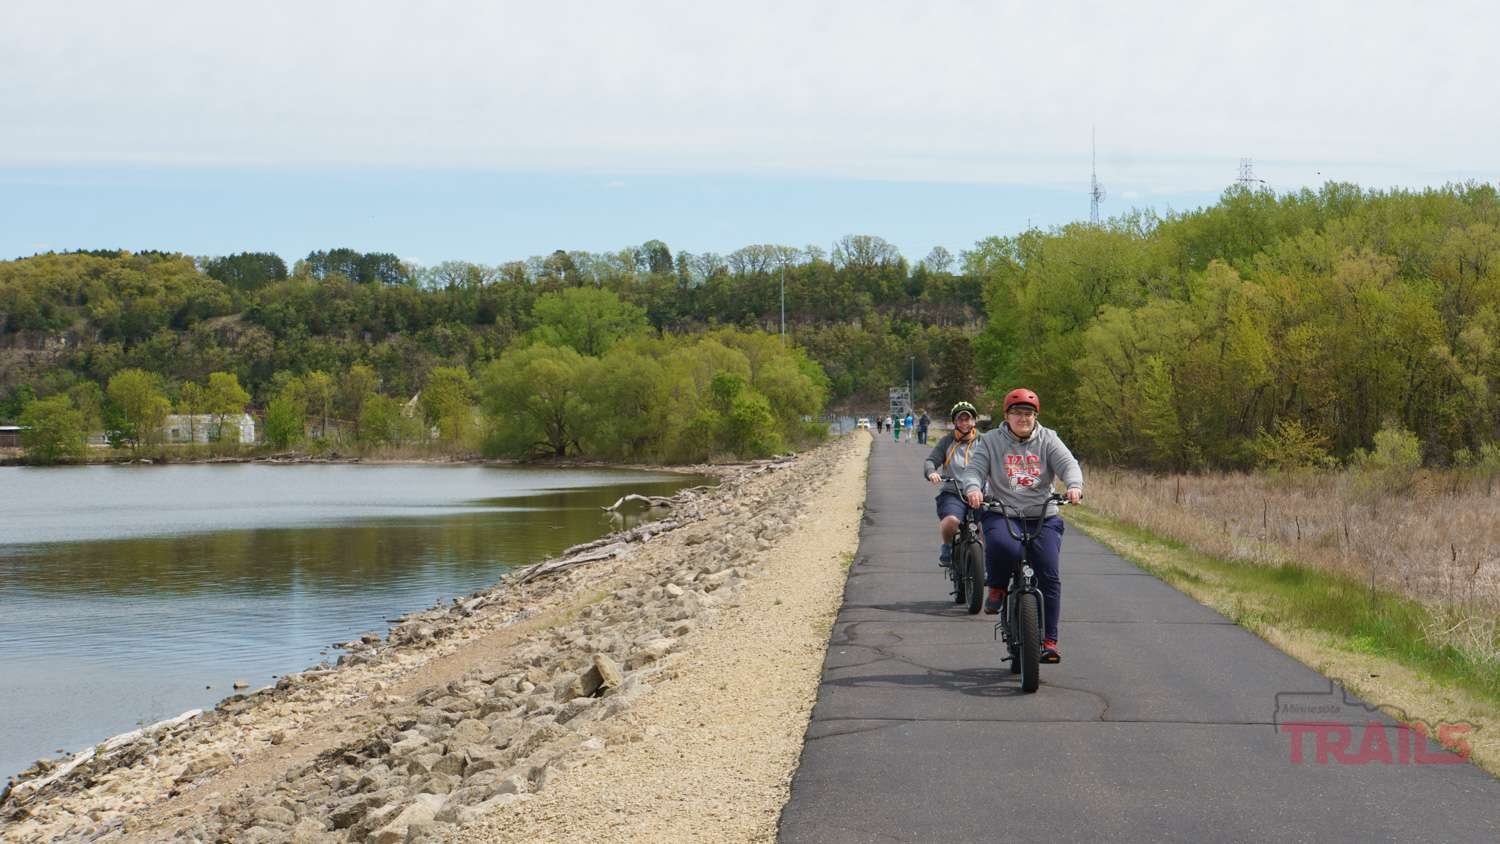 Two people on fat tire biccycles ride along the scenic river dike trail section in Hastings, Mn